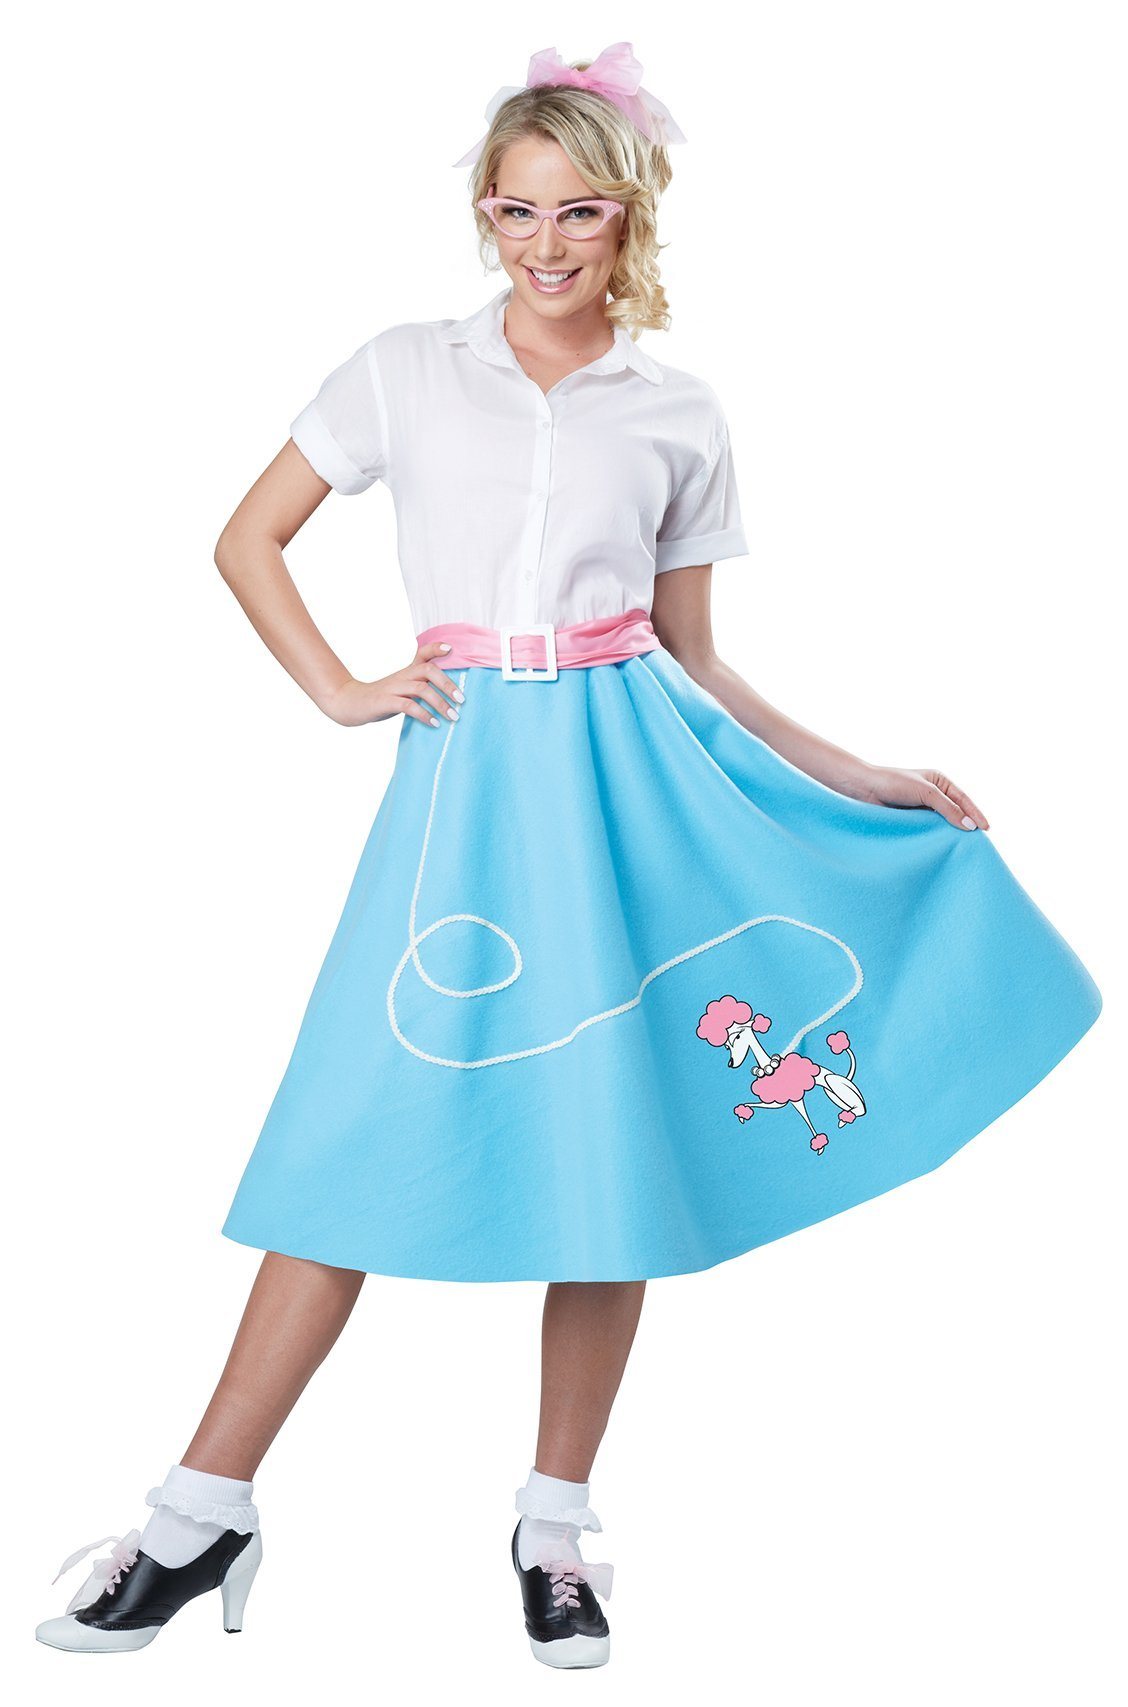 California Costumes Costumes LARGE/XLARGE Adult 50s Blue Poodle Skirt